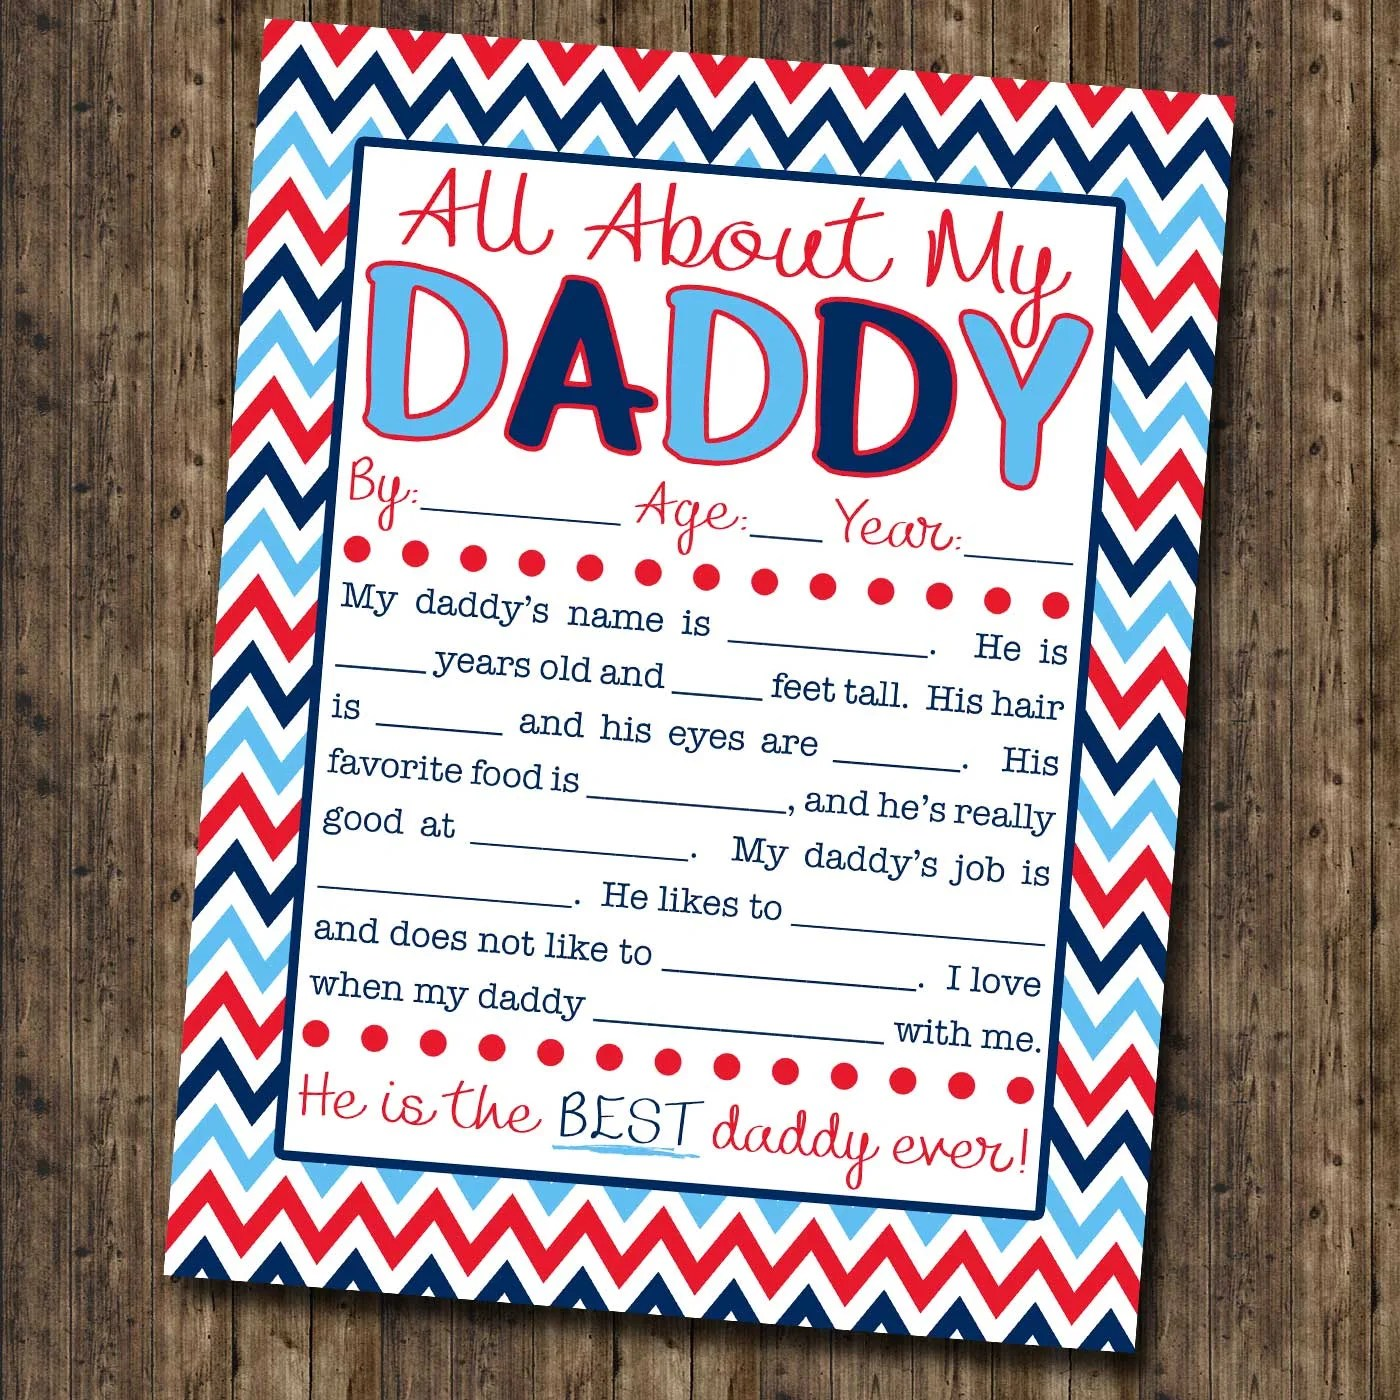 graphic regarding All About My Dad Free Printable named All Pertaining to My Daddy Job interview with Totally free Printable!